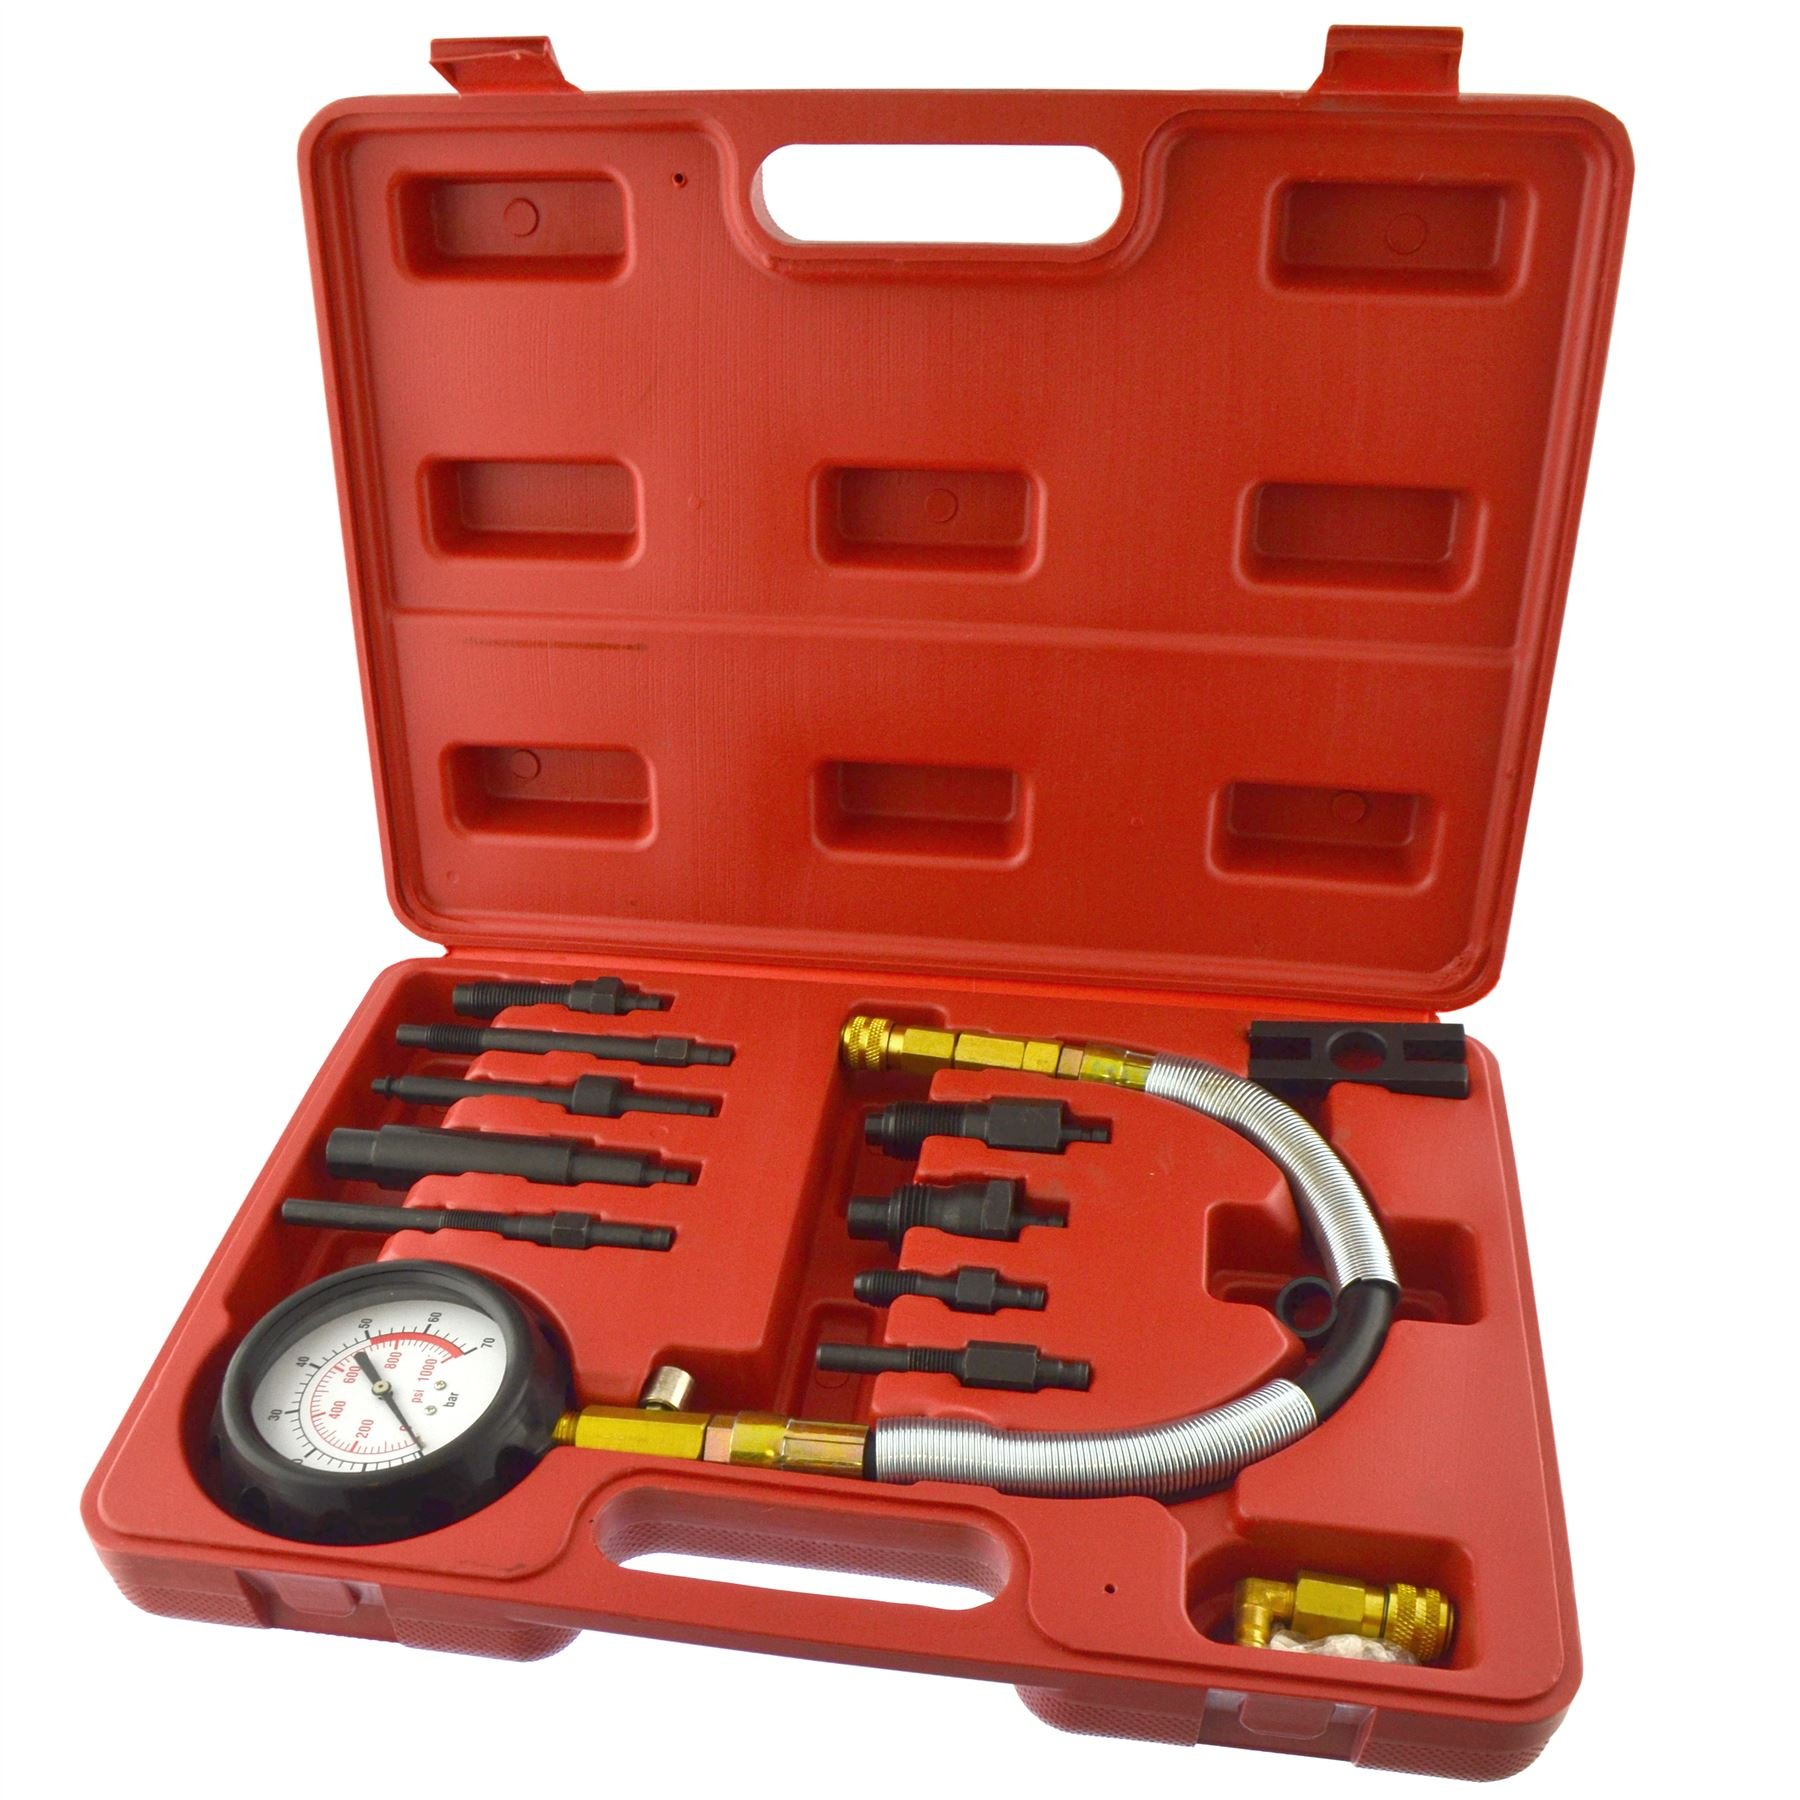 Diesel Engine Compression Tester Kit Direct / Indirect Injection Engines AN087 by AB Tools-Neilsen (Image #1)